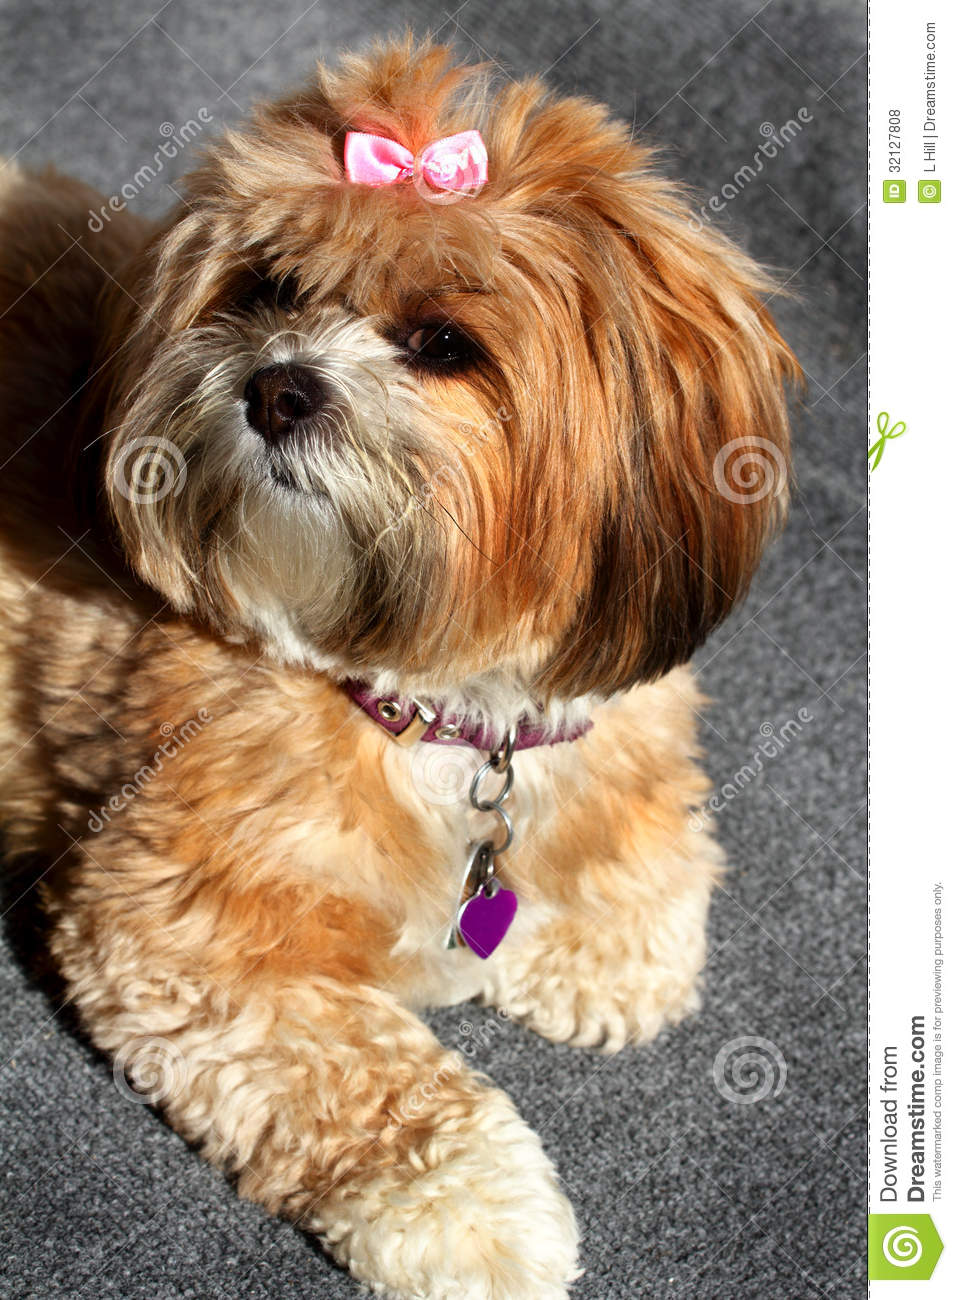 Fluffy Pooch Royalty Free Stock Photos - Image: 32127808